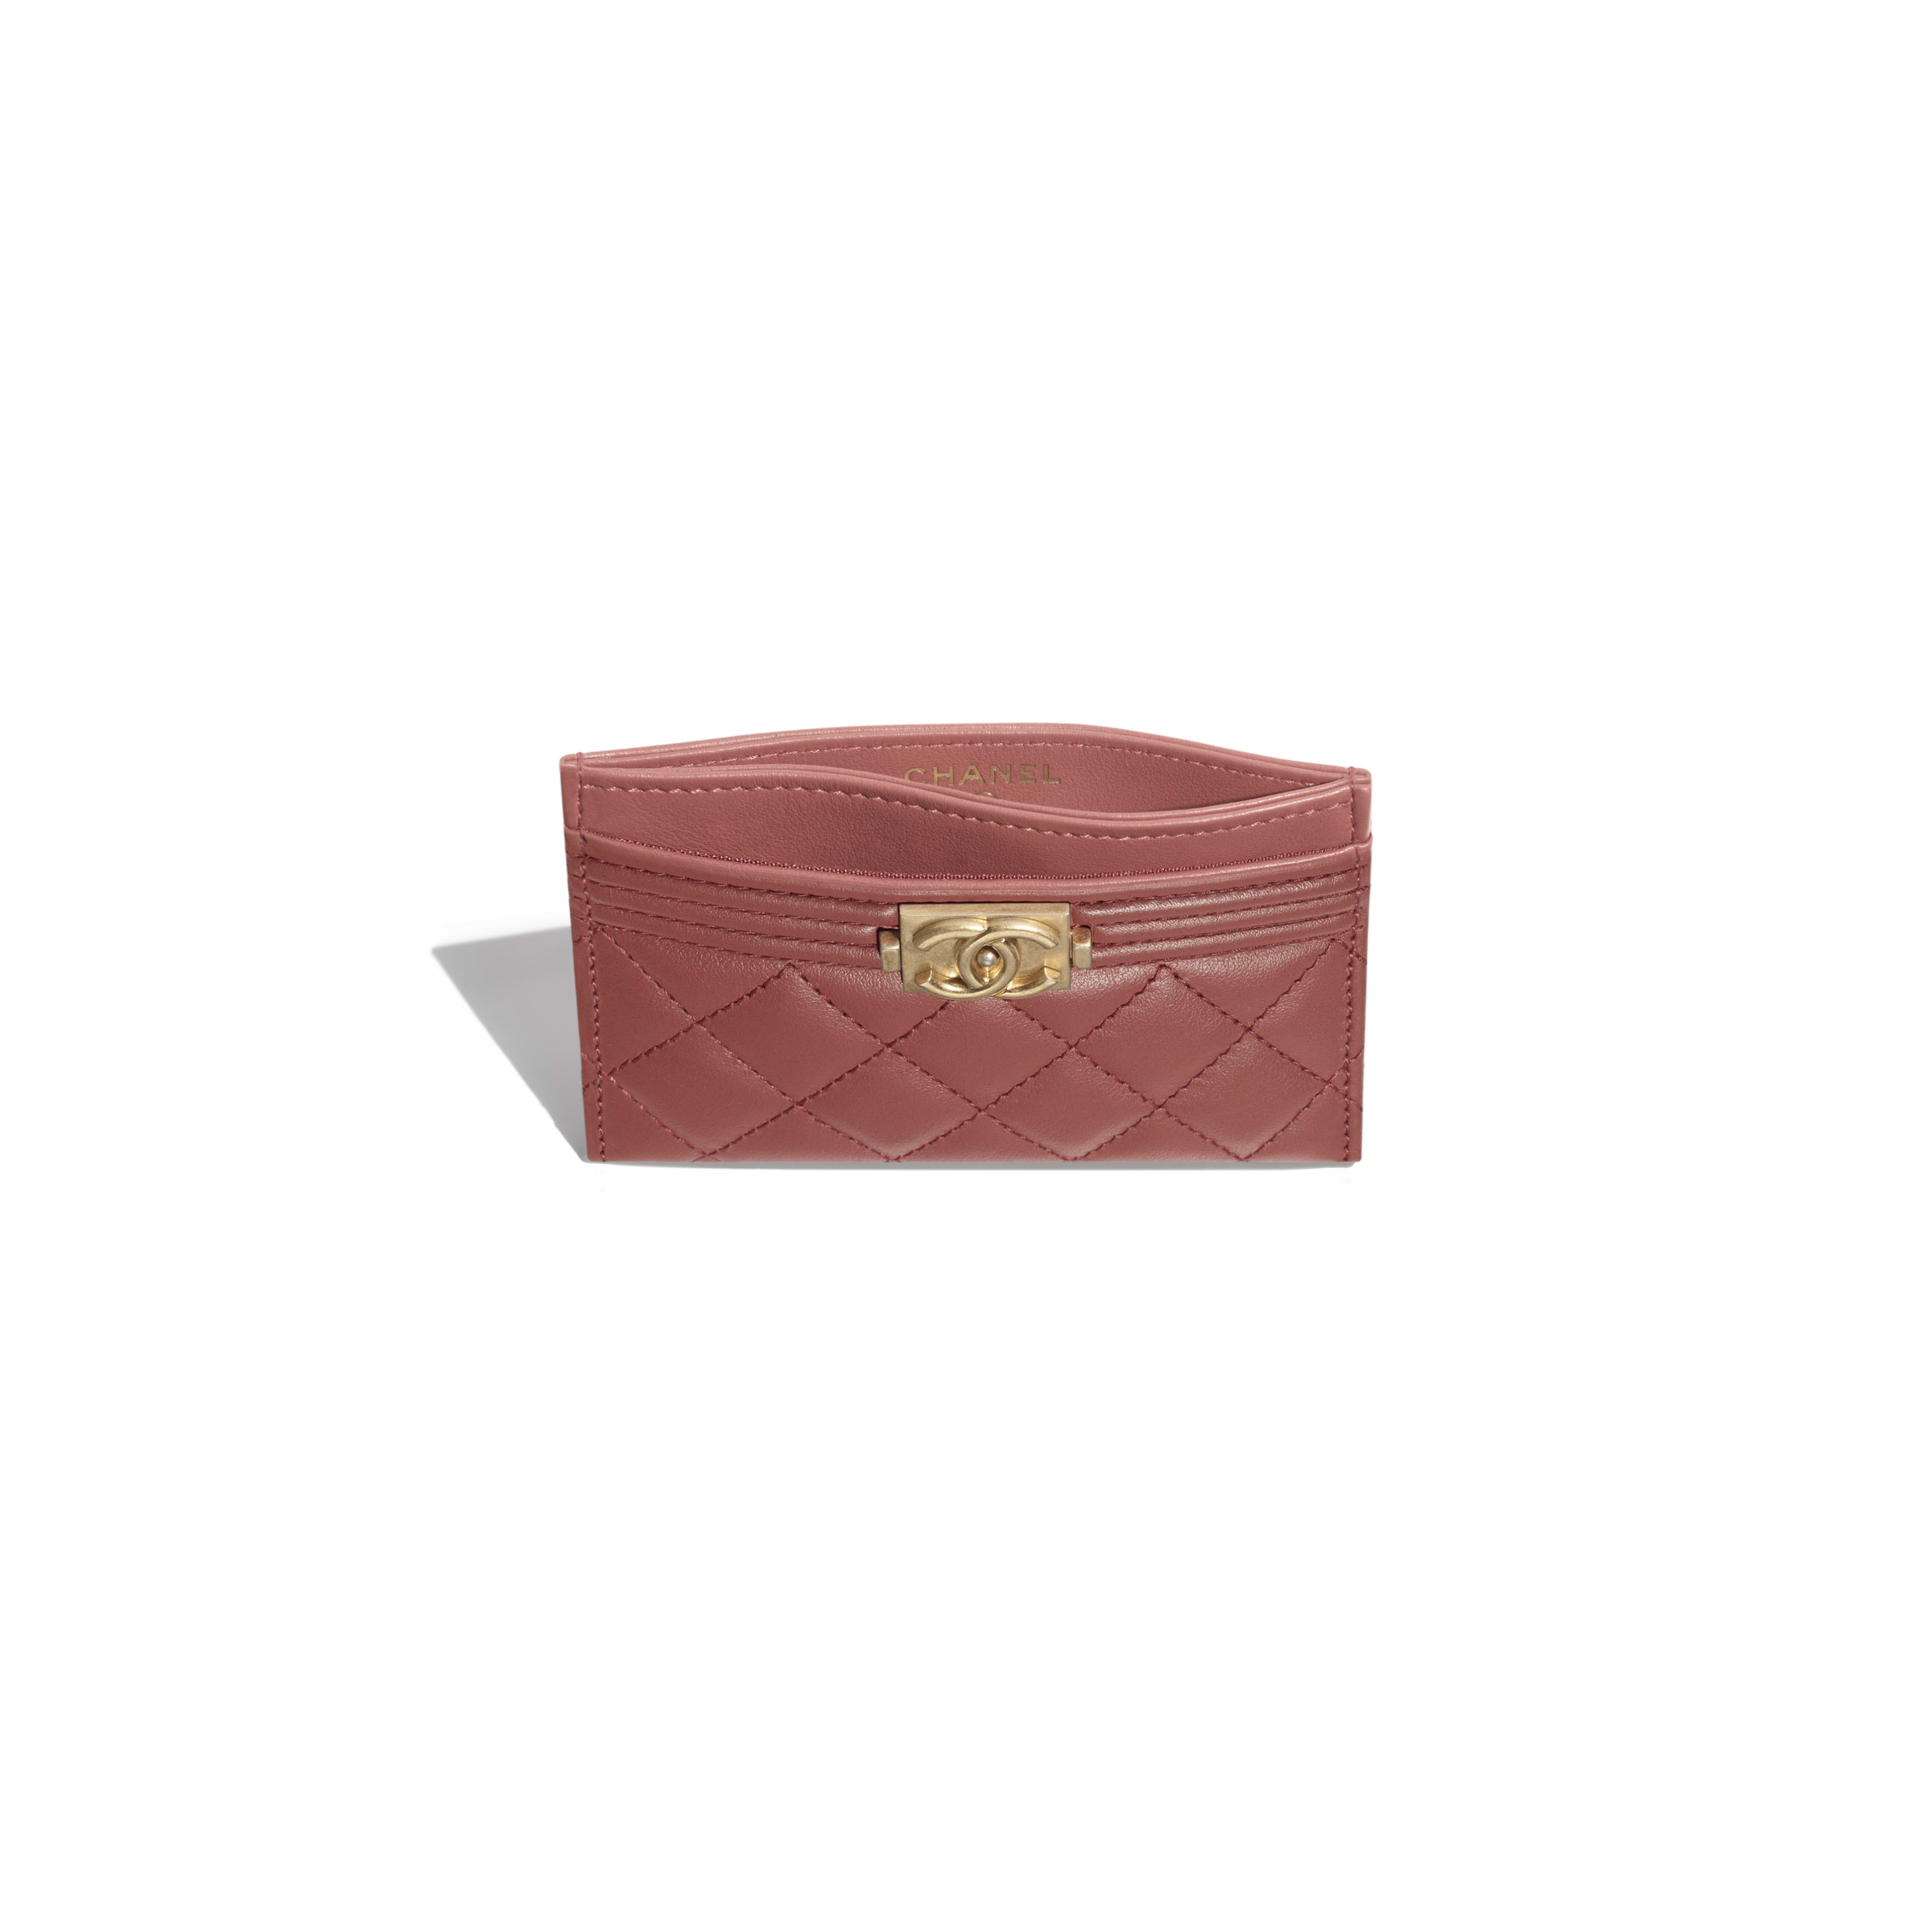 BOY CHANEL Card Holder Calfskin & Gold-Tone Metal Dark Red -                                            view 3 - see full sized version